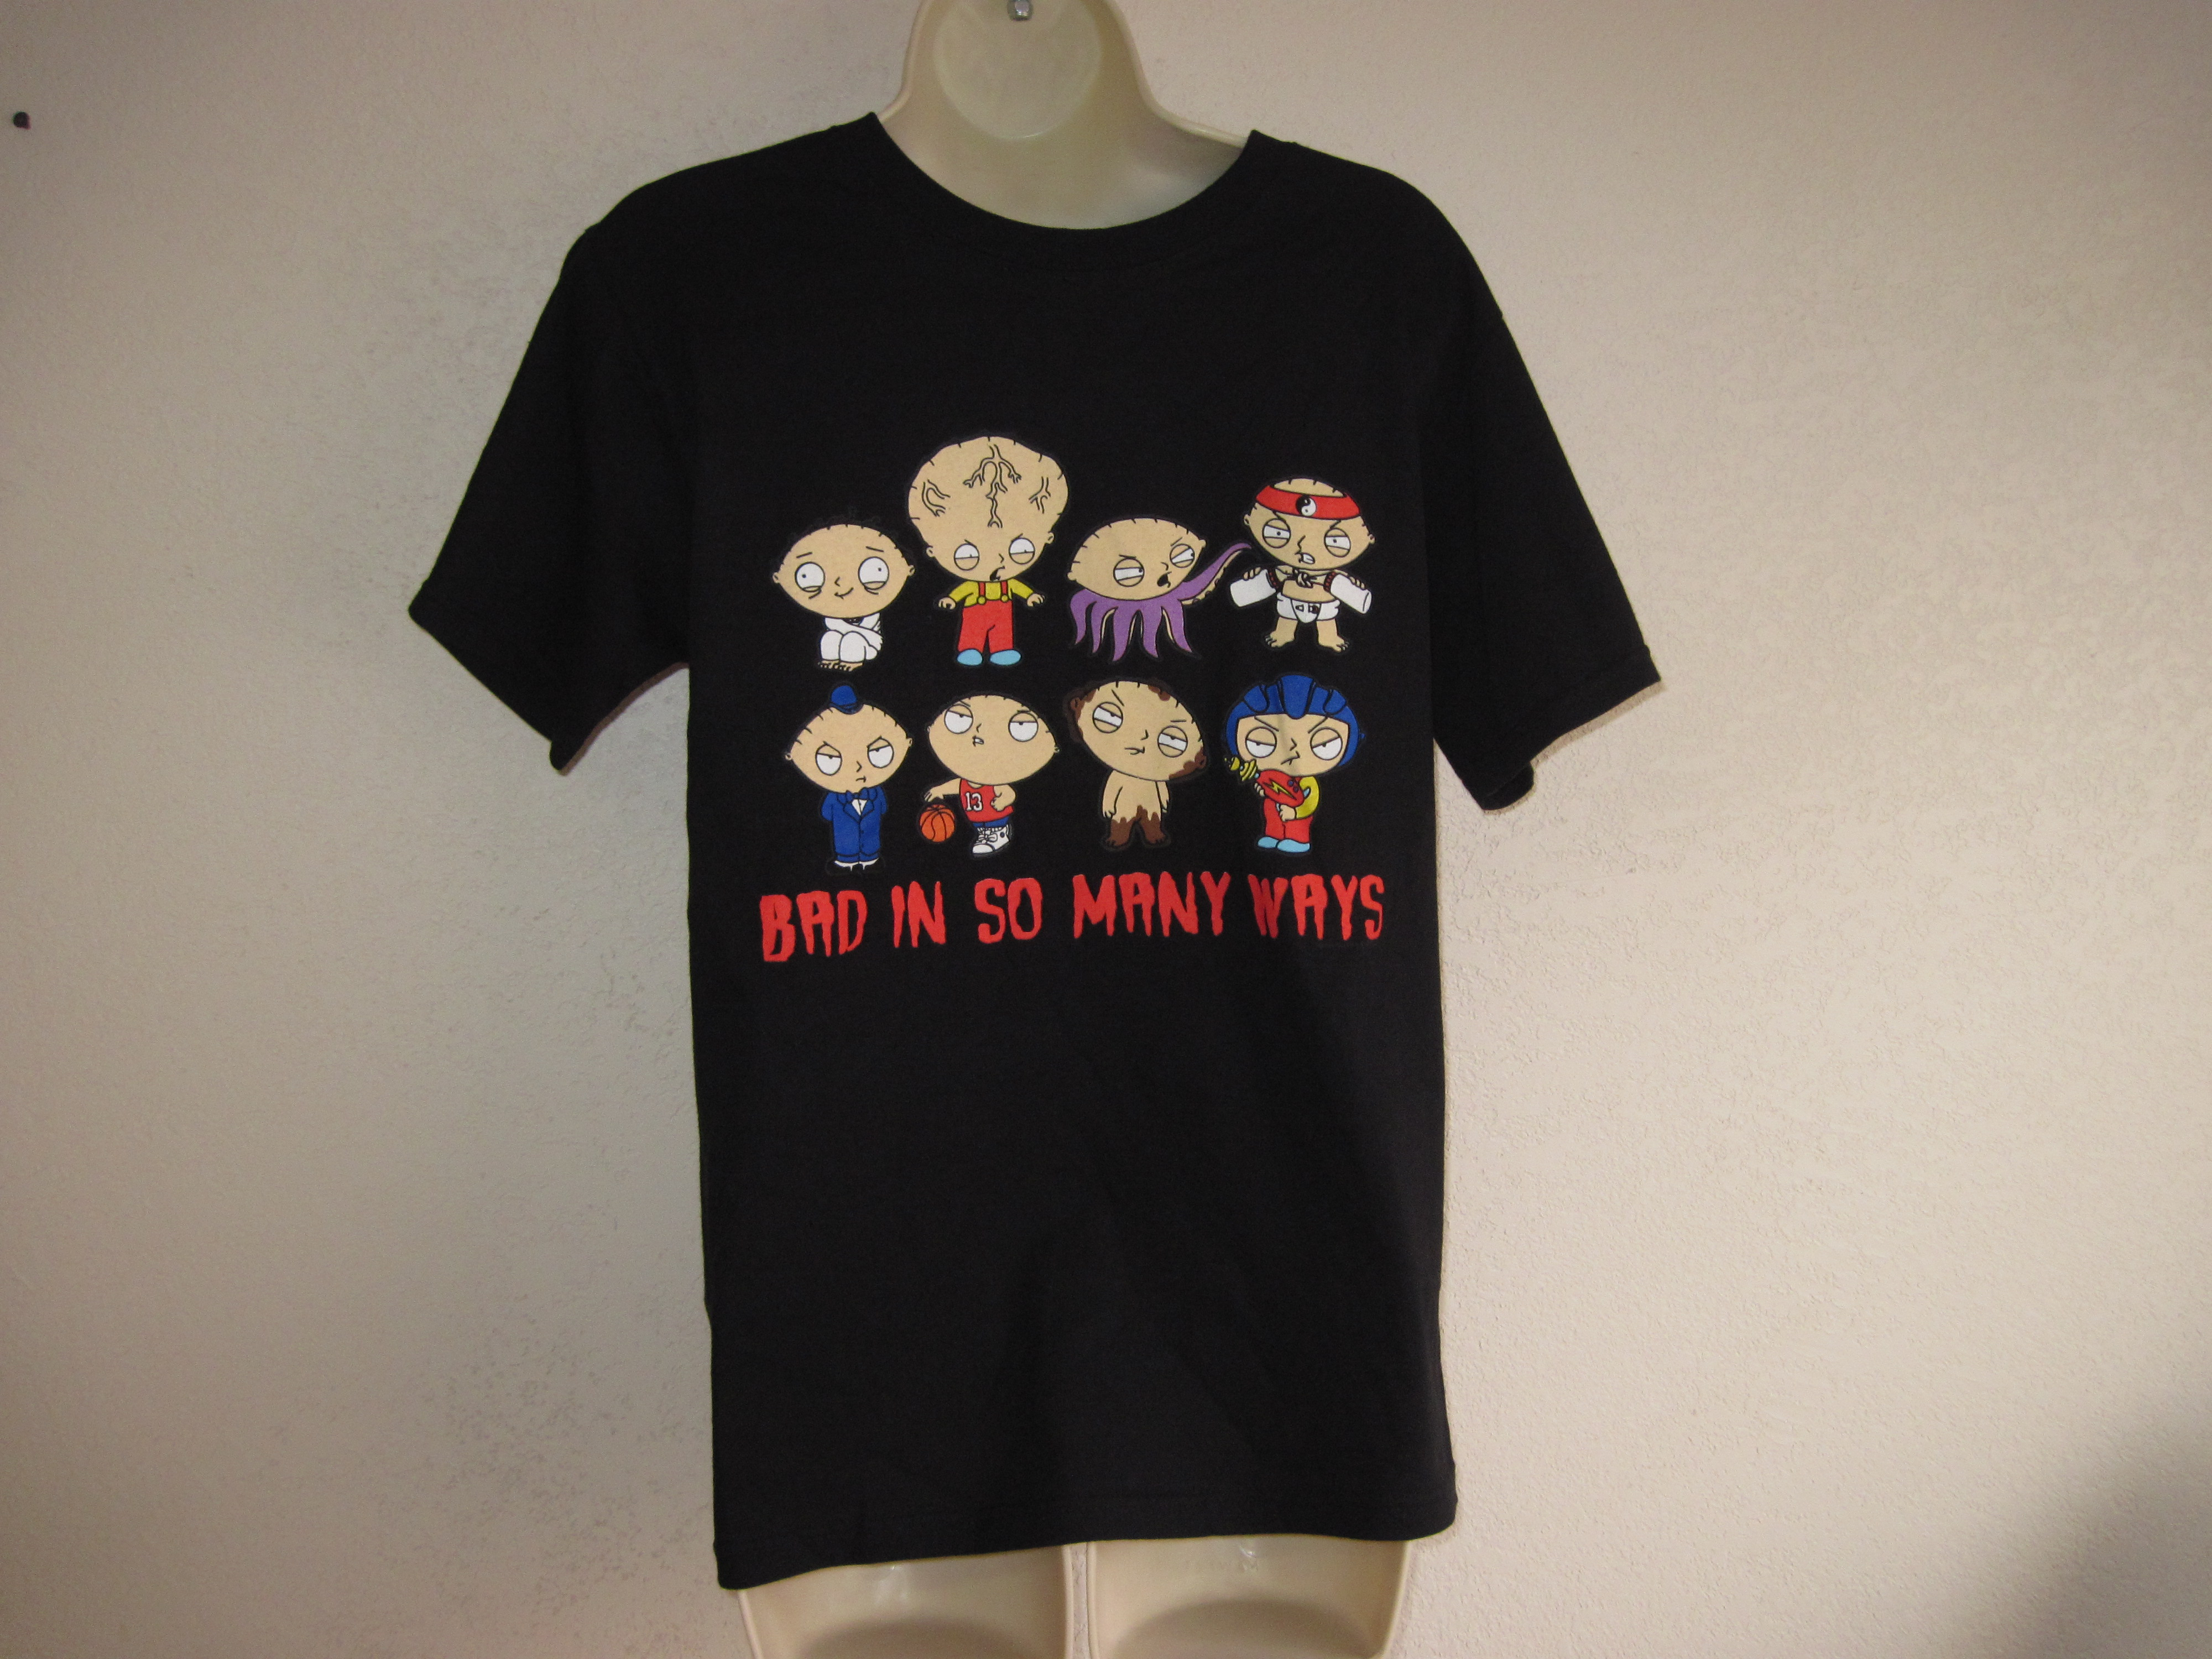 Family Guy Sz S T-Shirt Black with Bad in so many ways